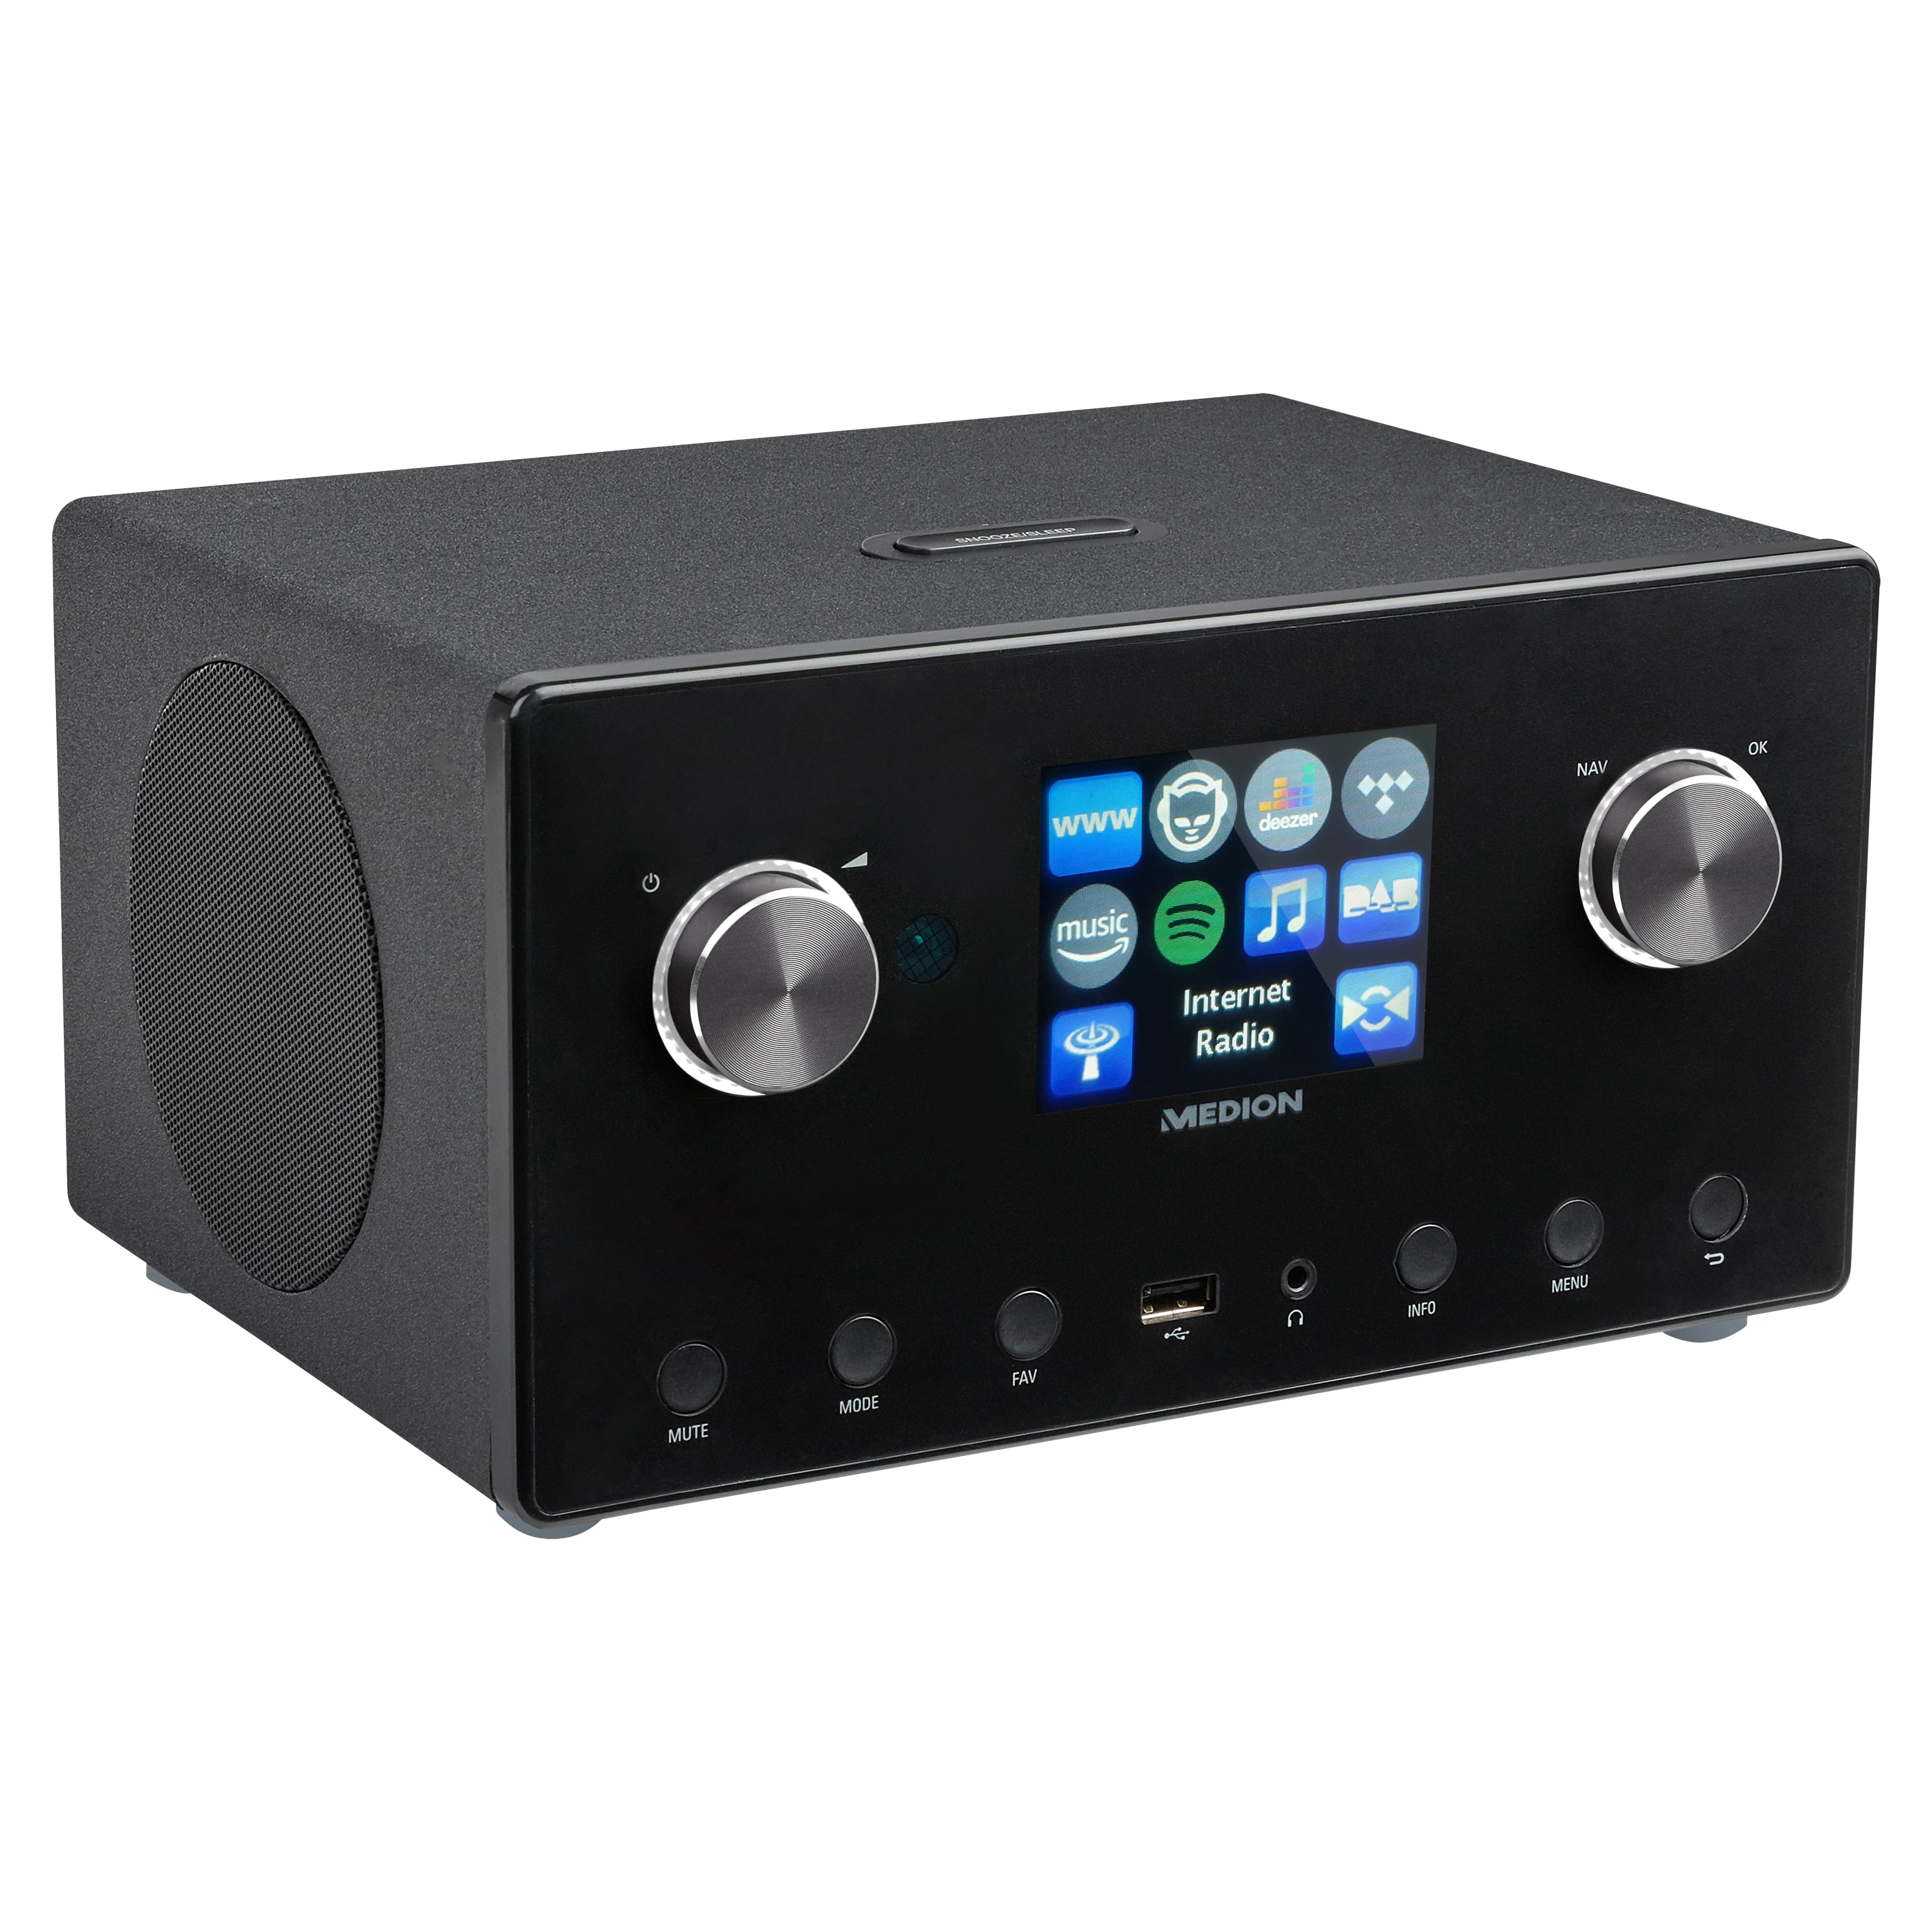 "MEDION® LIFE® P85295 Stereo Internetradio, großes 8,1 cm (3,2"") TFT-Display, DAB+ & UKW, Spotify®-Connect, DLNA, USB, WLAN, LAN, integrierter Subwoofer, 2 x 7,5 W + 1 x 15 W (RMS)"